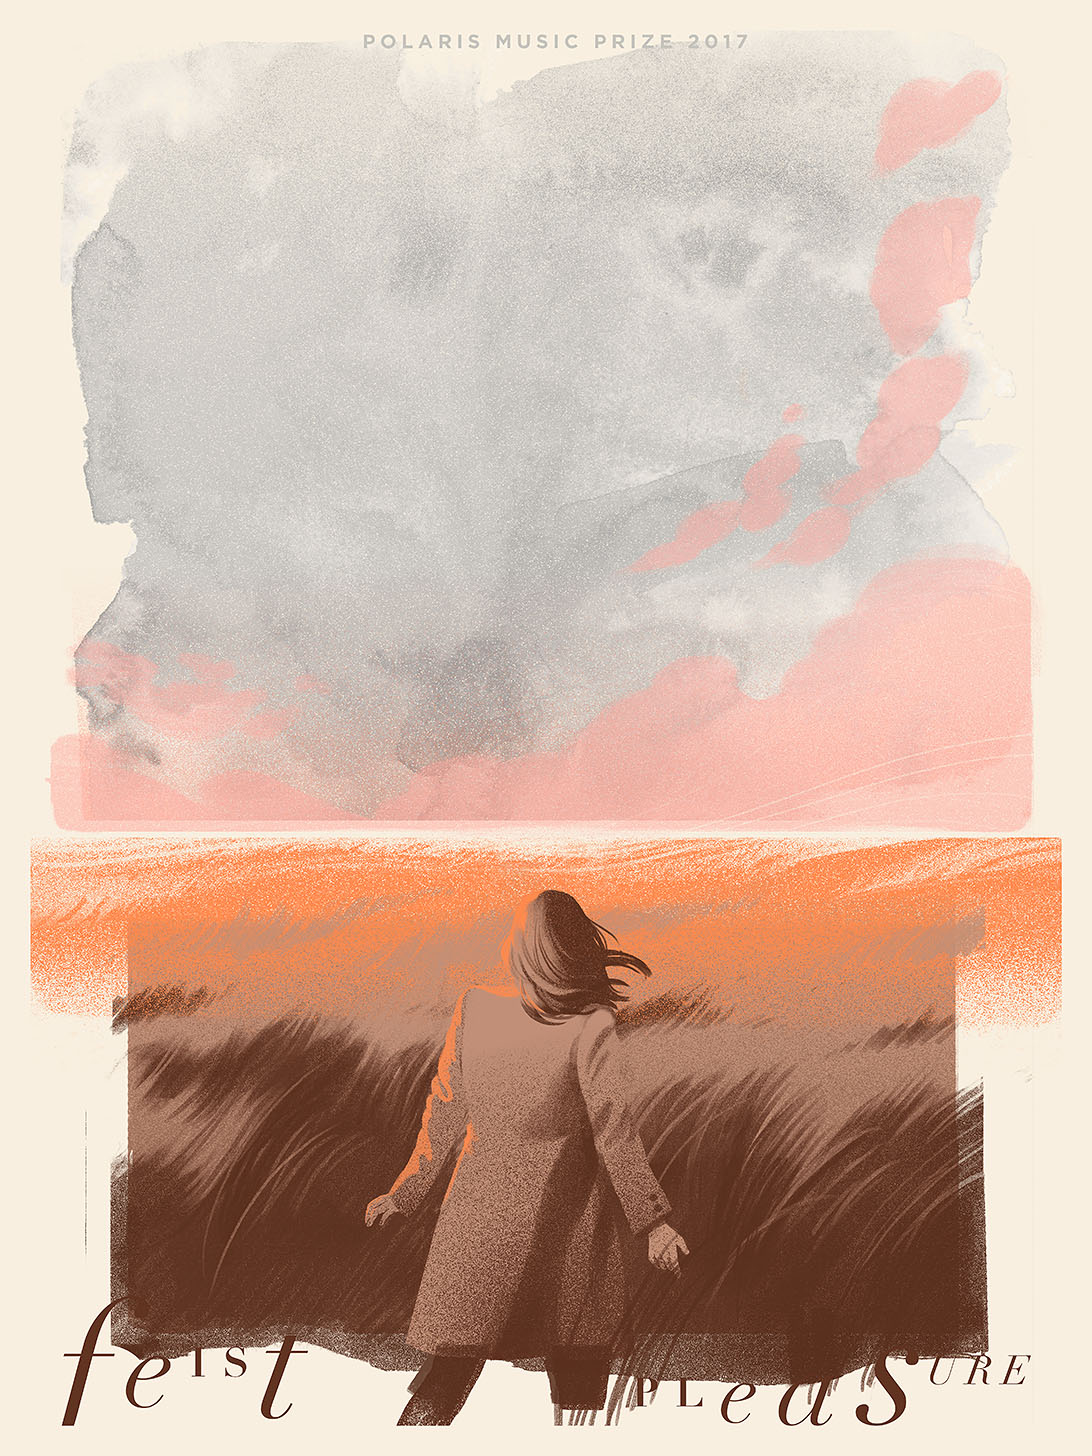 A concert poster for Feist depicts a woman walking through a wheat field toward a bright, colourful horizon line. Illustration by Cristian Fowlie for the Polaris Music Prize 2017.